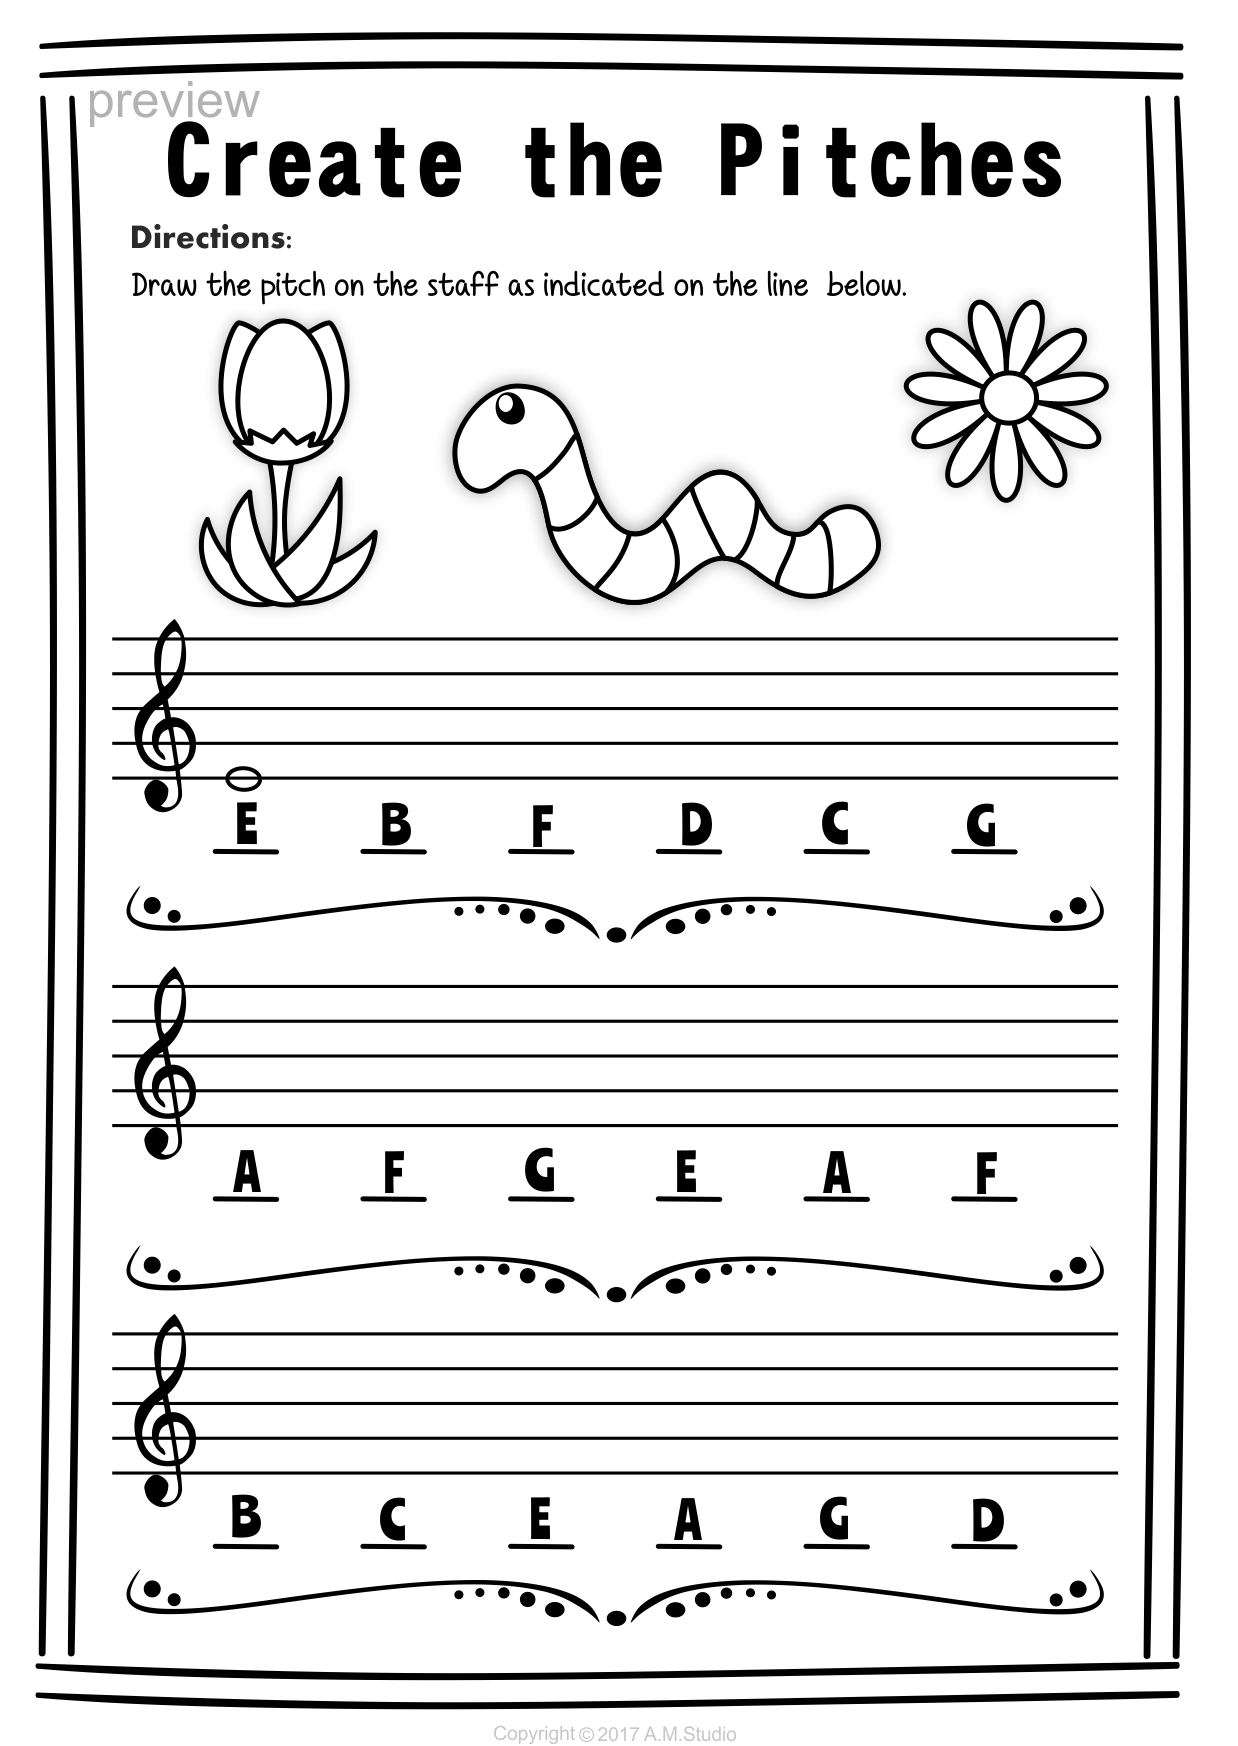 Worksheets Treble Clef Worksheet treble clef note naming worksheets for spring6 anastasiya spring